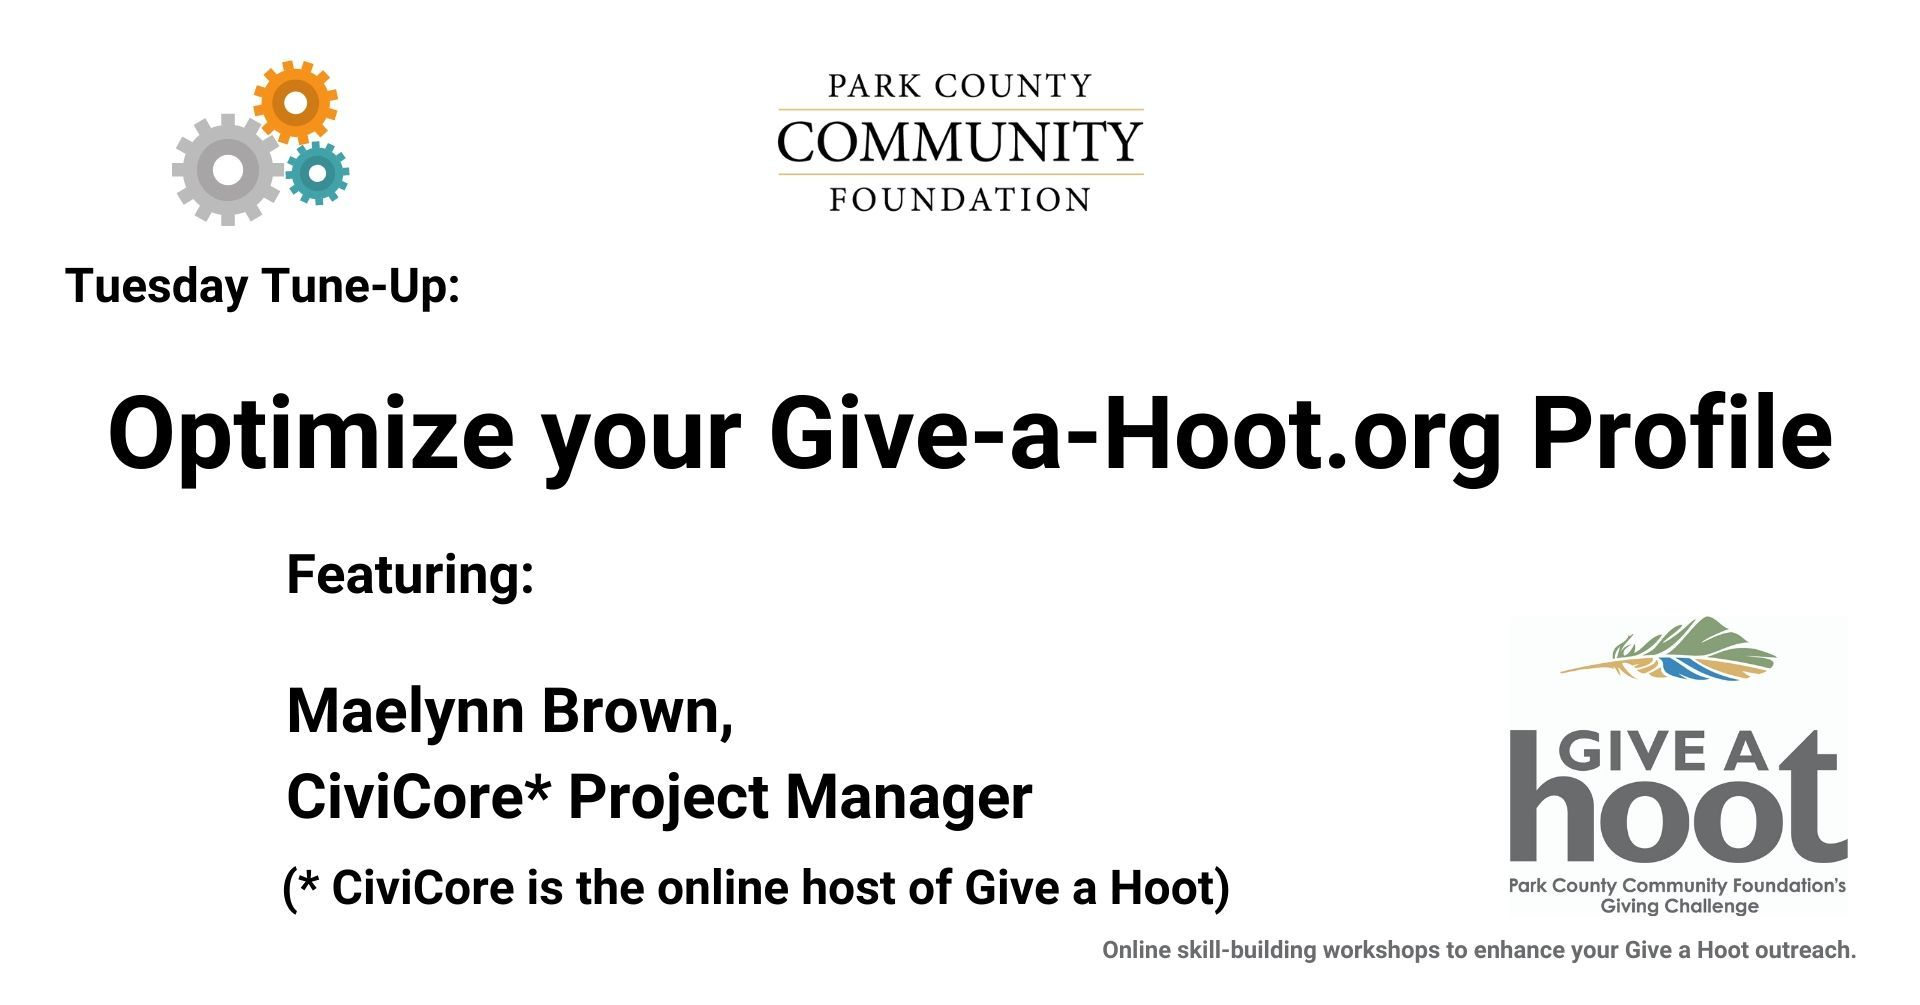 Optimize Your Give-a-Hoot Profile